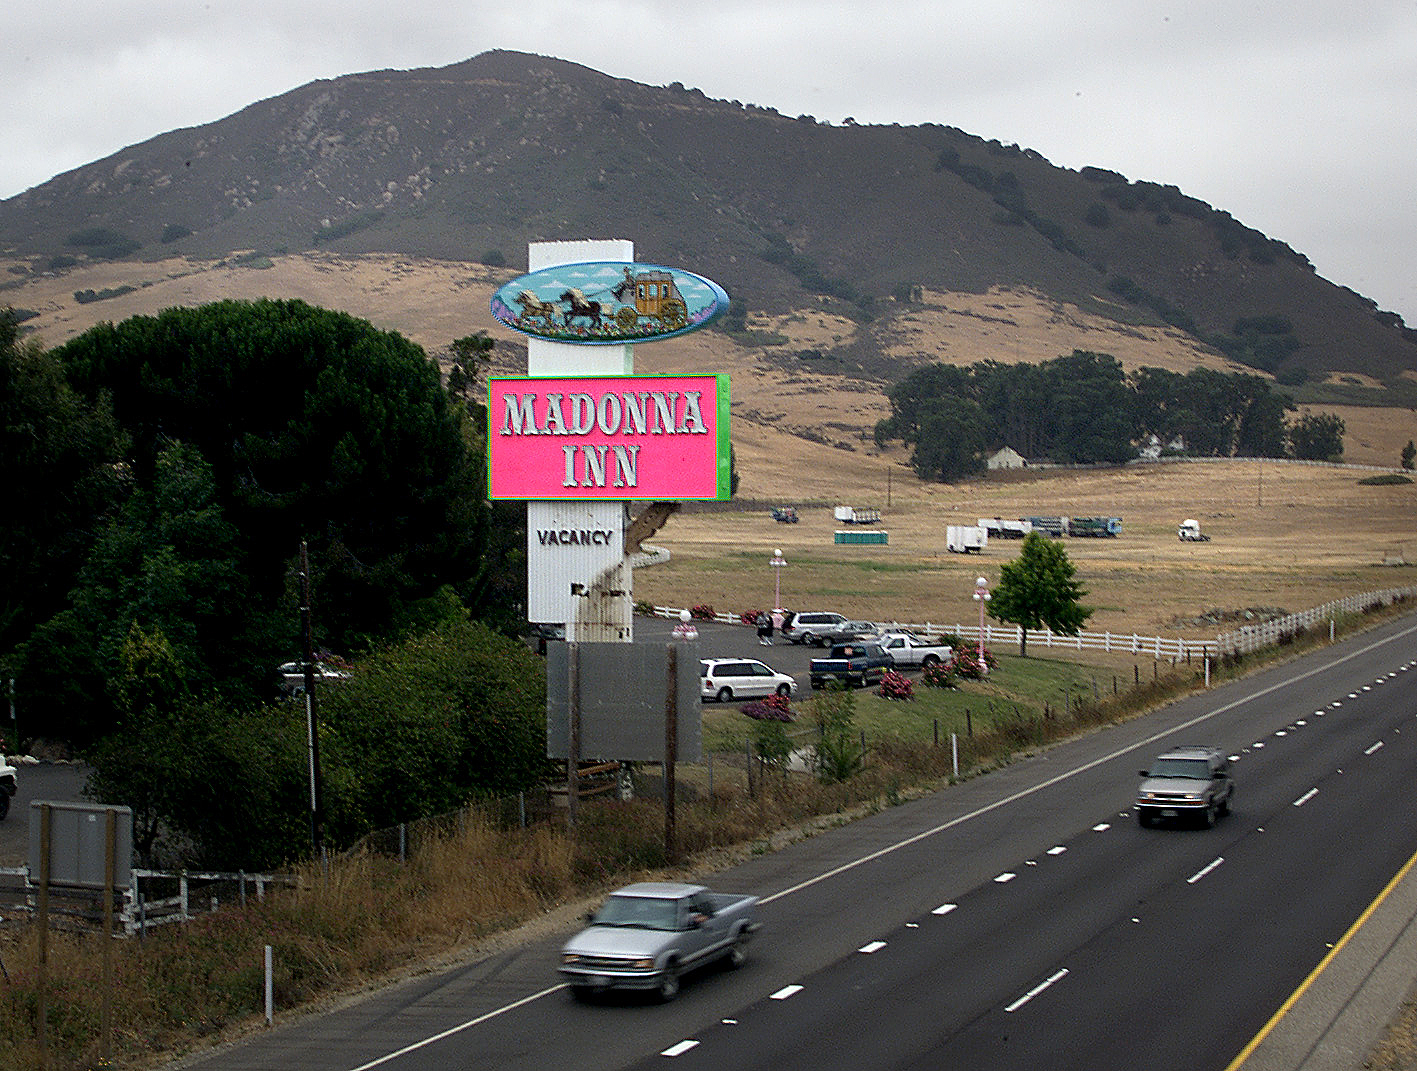 The Madonna Inn sign by the 101 freeway in San Luis Obispo.